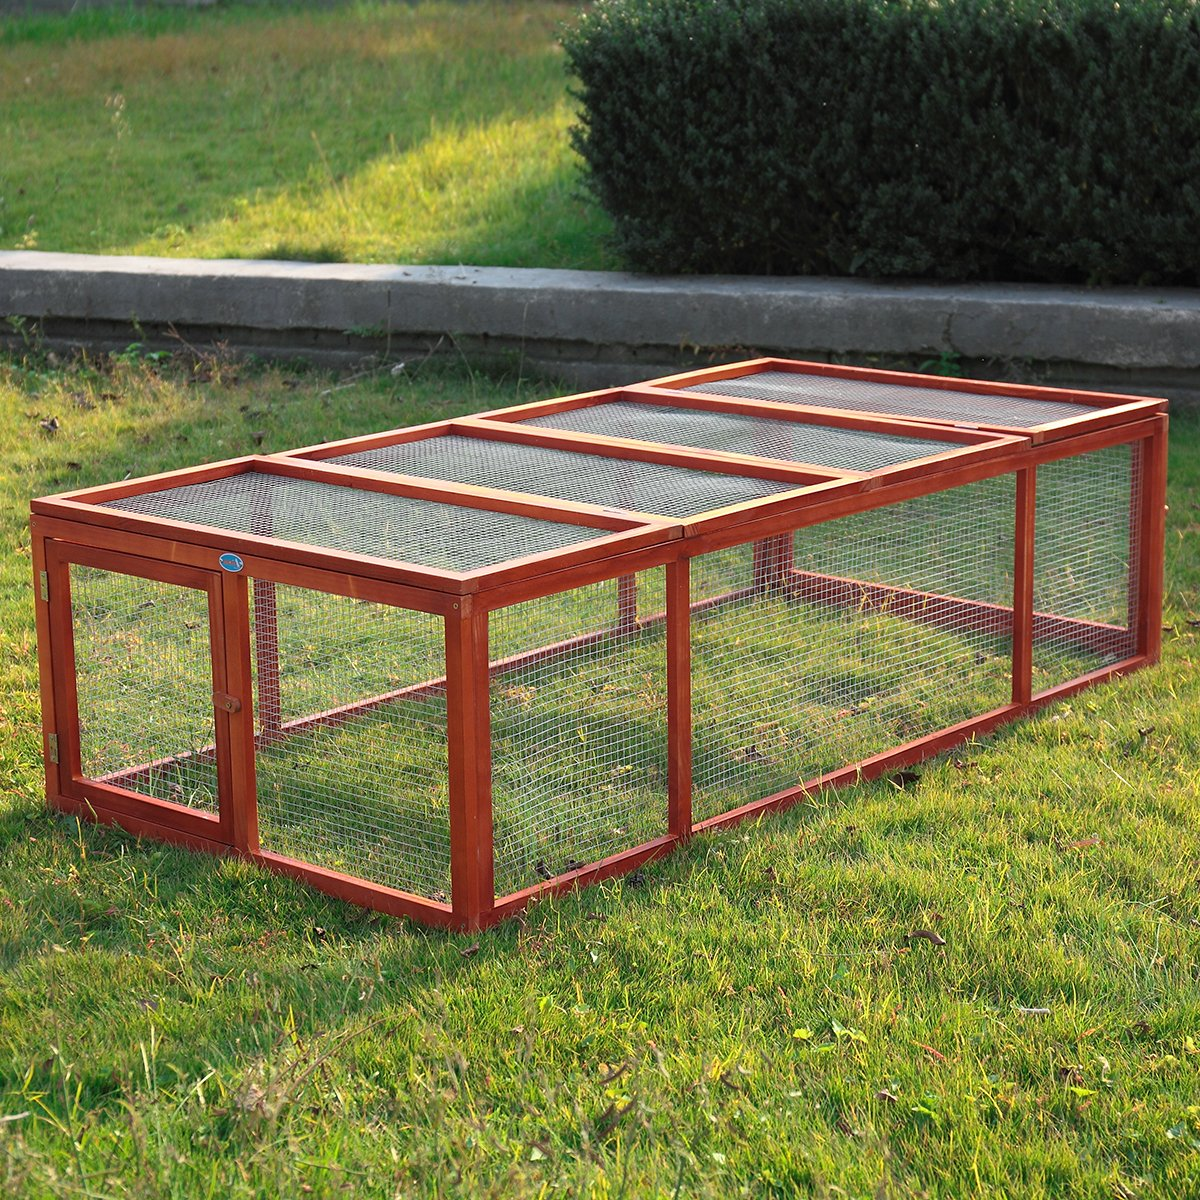 Tobbi Wooden Rabbit Hutch With Run Pet Animal Poultry